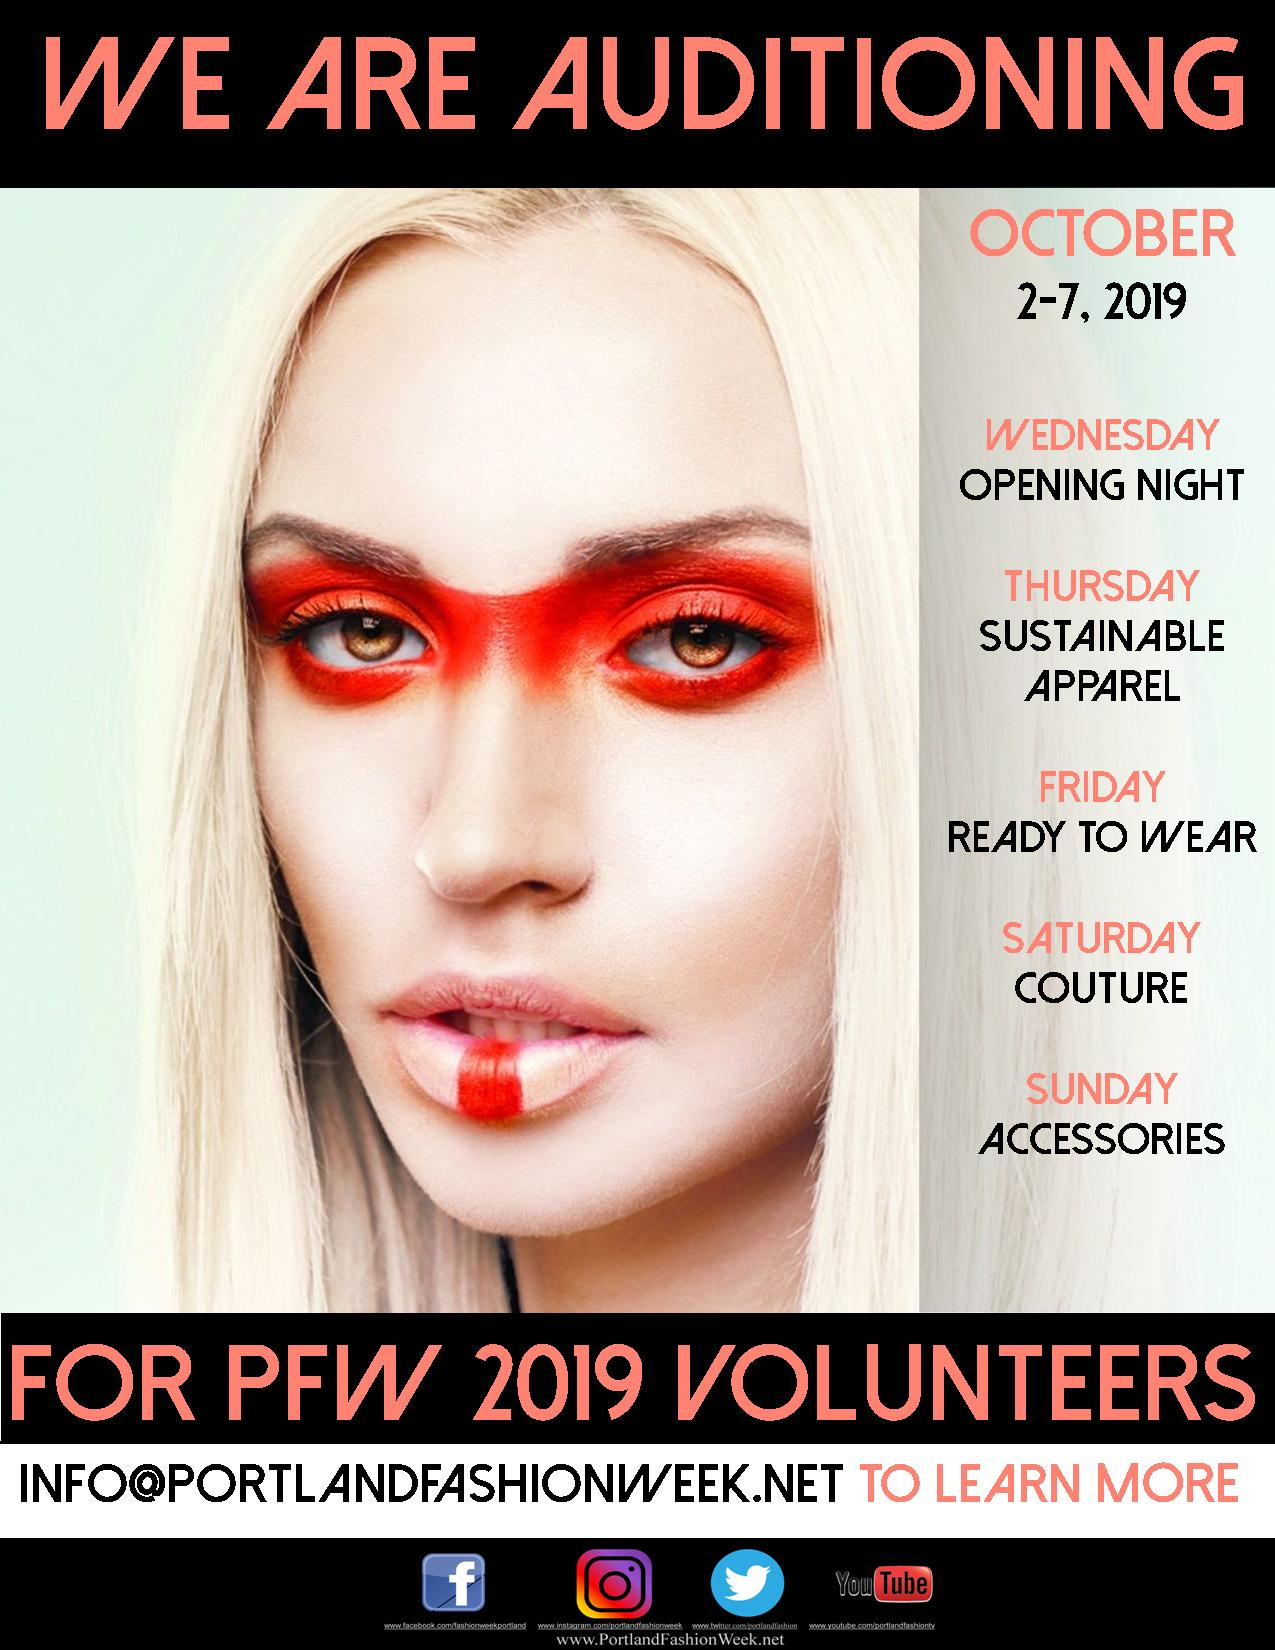 We want YOU - For Portland Fashion Week 2019! Put your skills and talents to good use working with the world's most sustainable fashion week. Email us for more information.